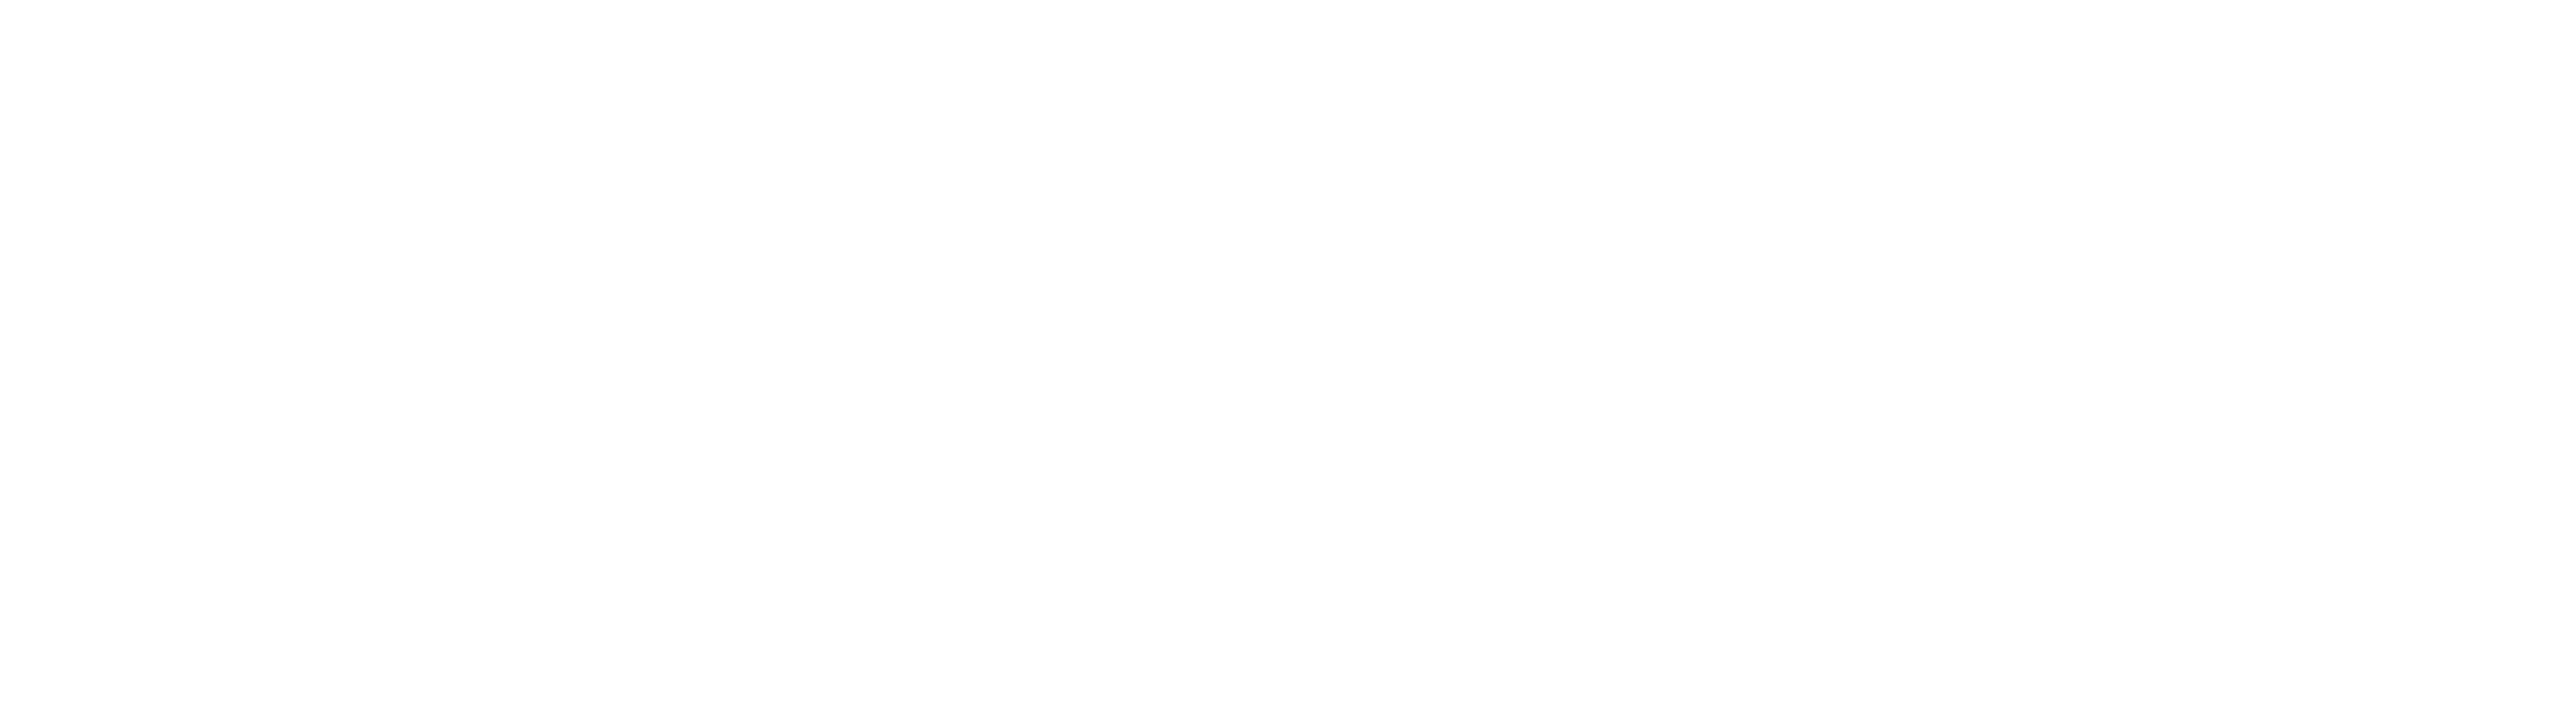 What is my DNS server? - Canadian Web Hosting Knowledge Base